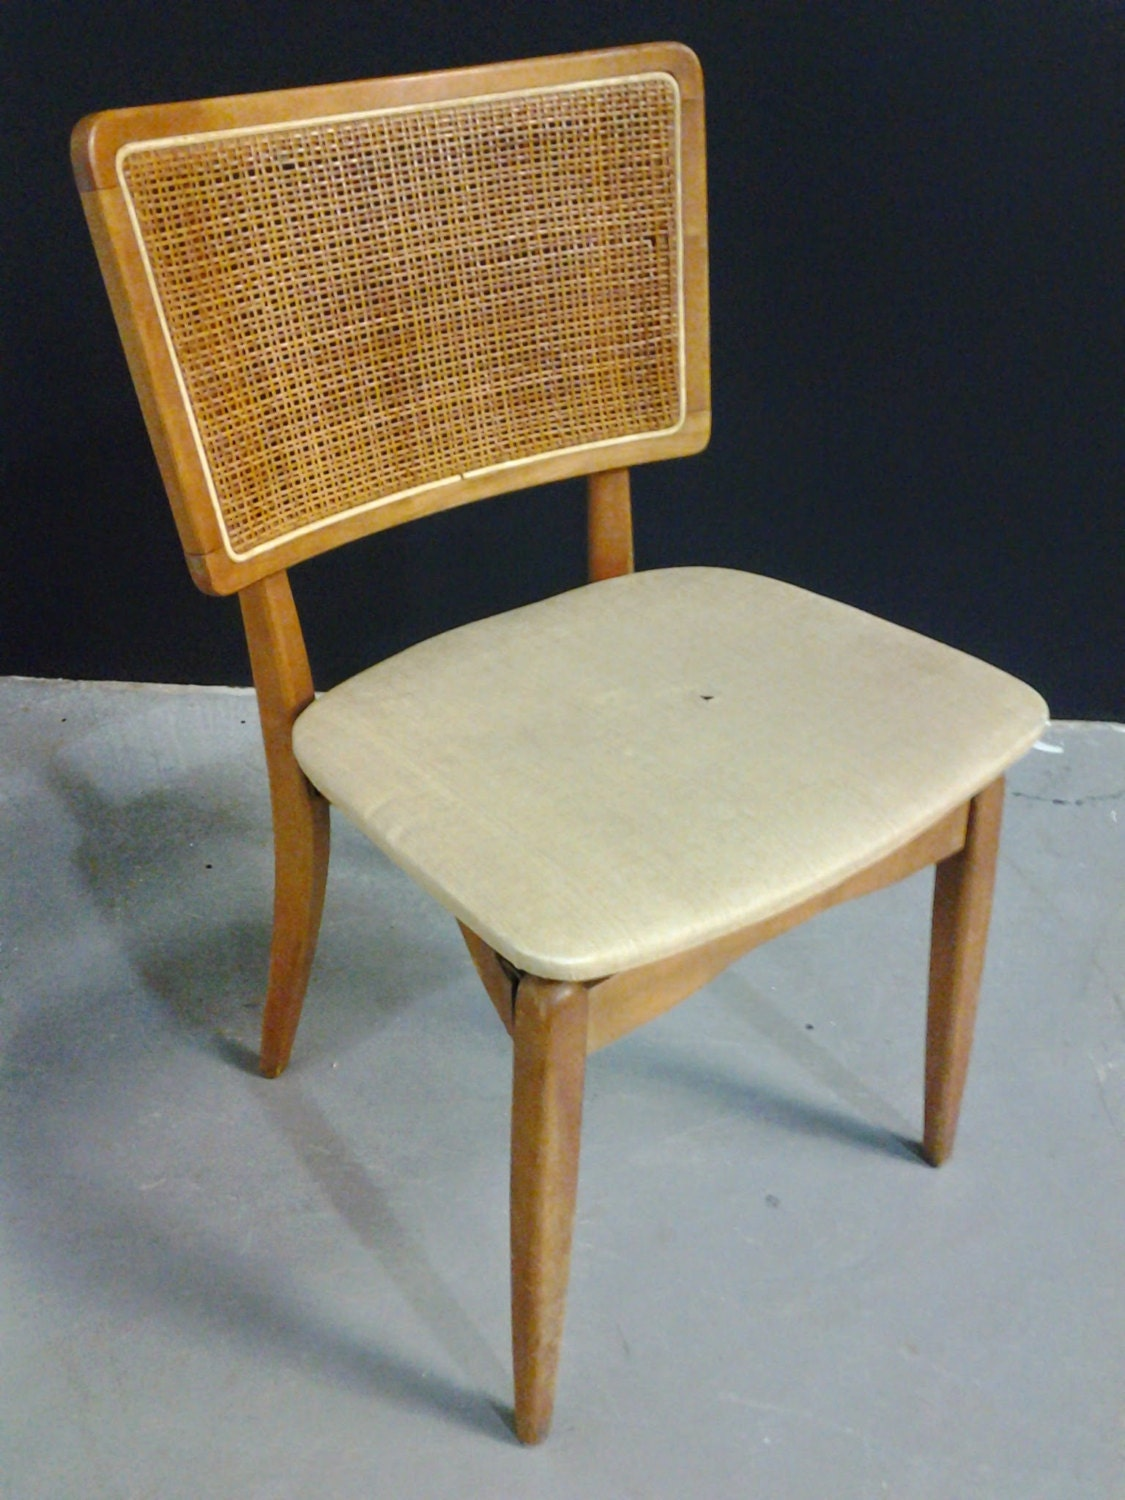 MidCentury Vintage Stakmore Folding Chair with Prouve Style